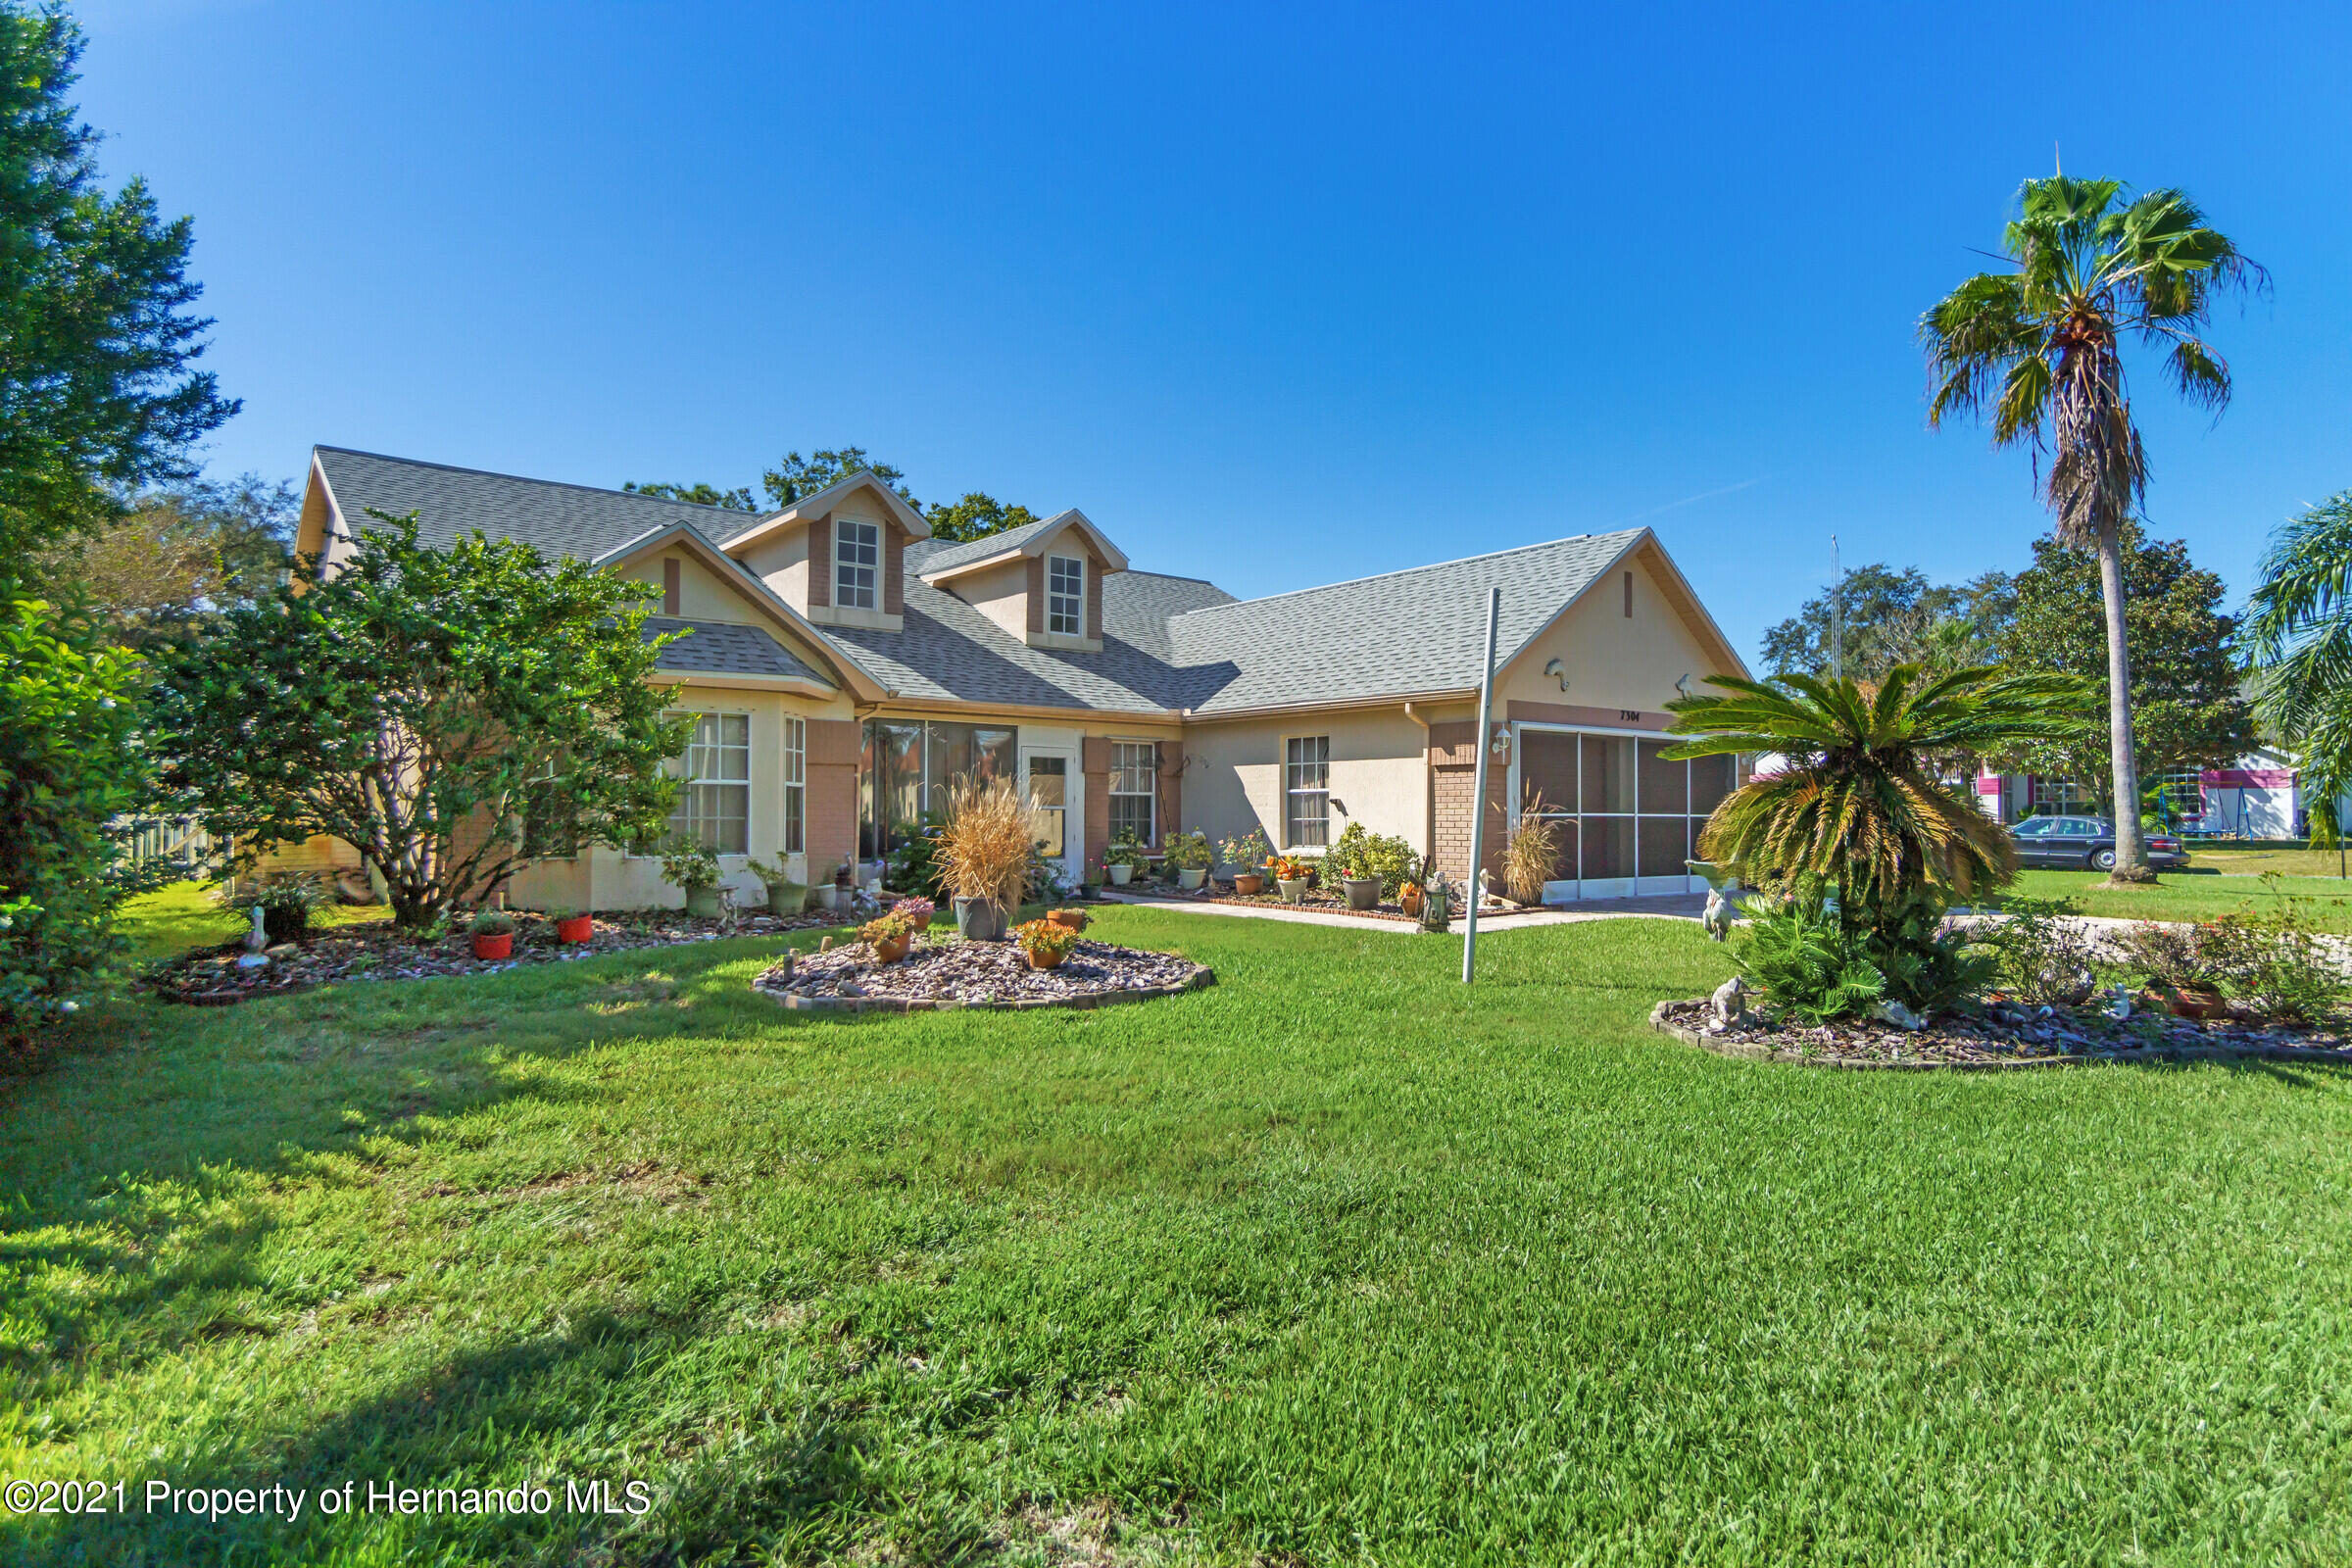 Details for 7304 Cone Shell Drive, Spring Hill, FL 34607